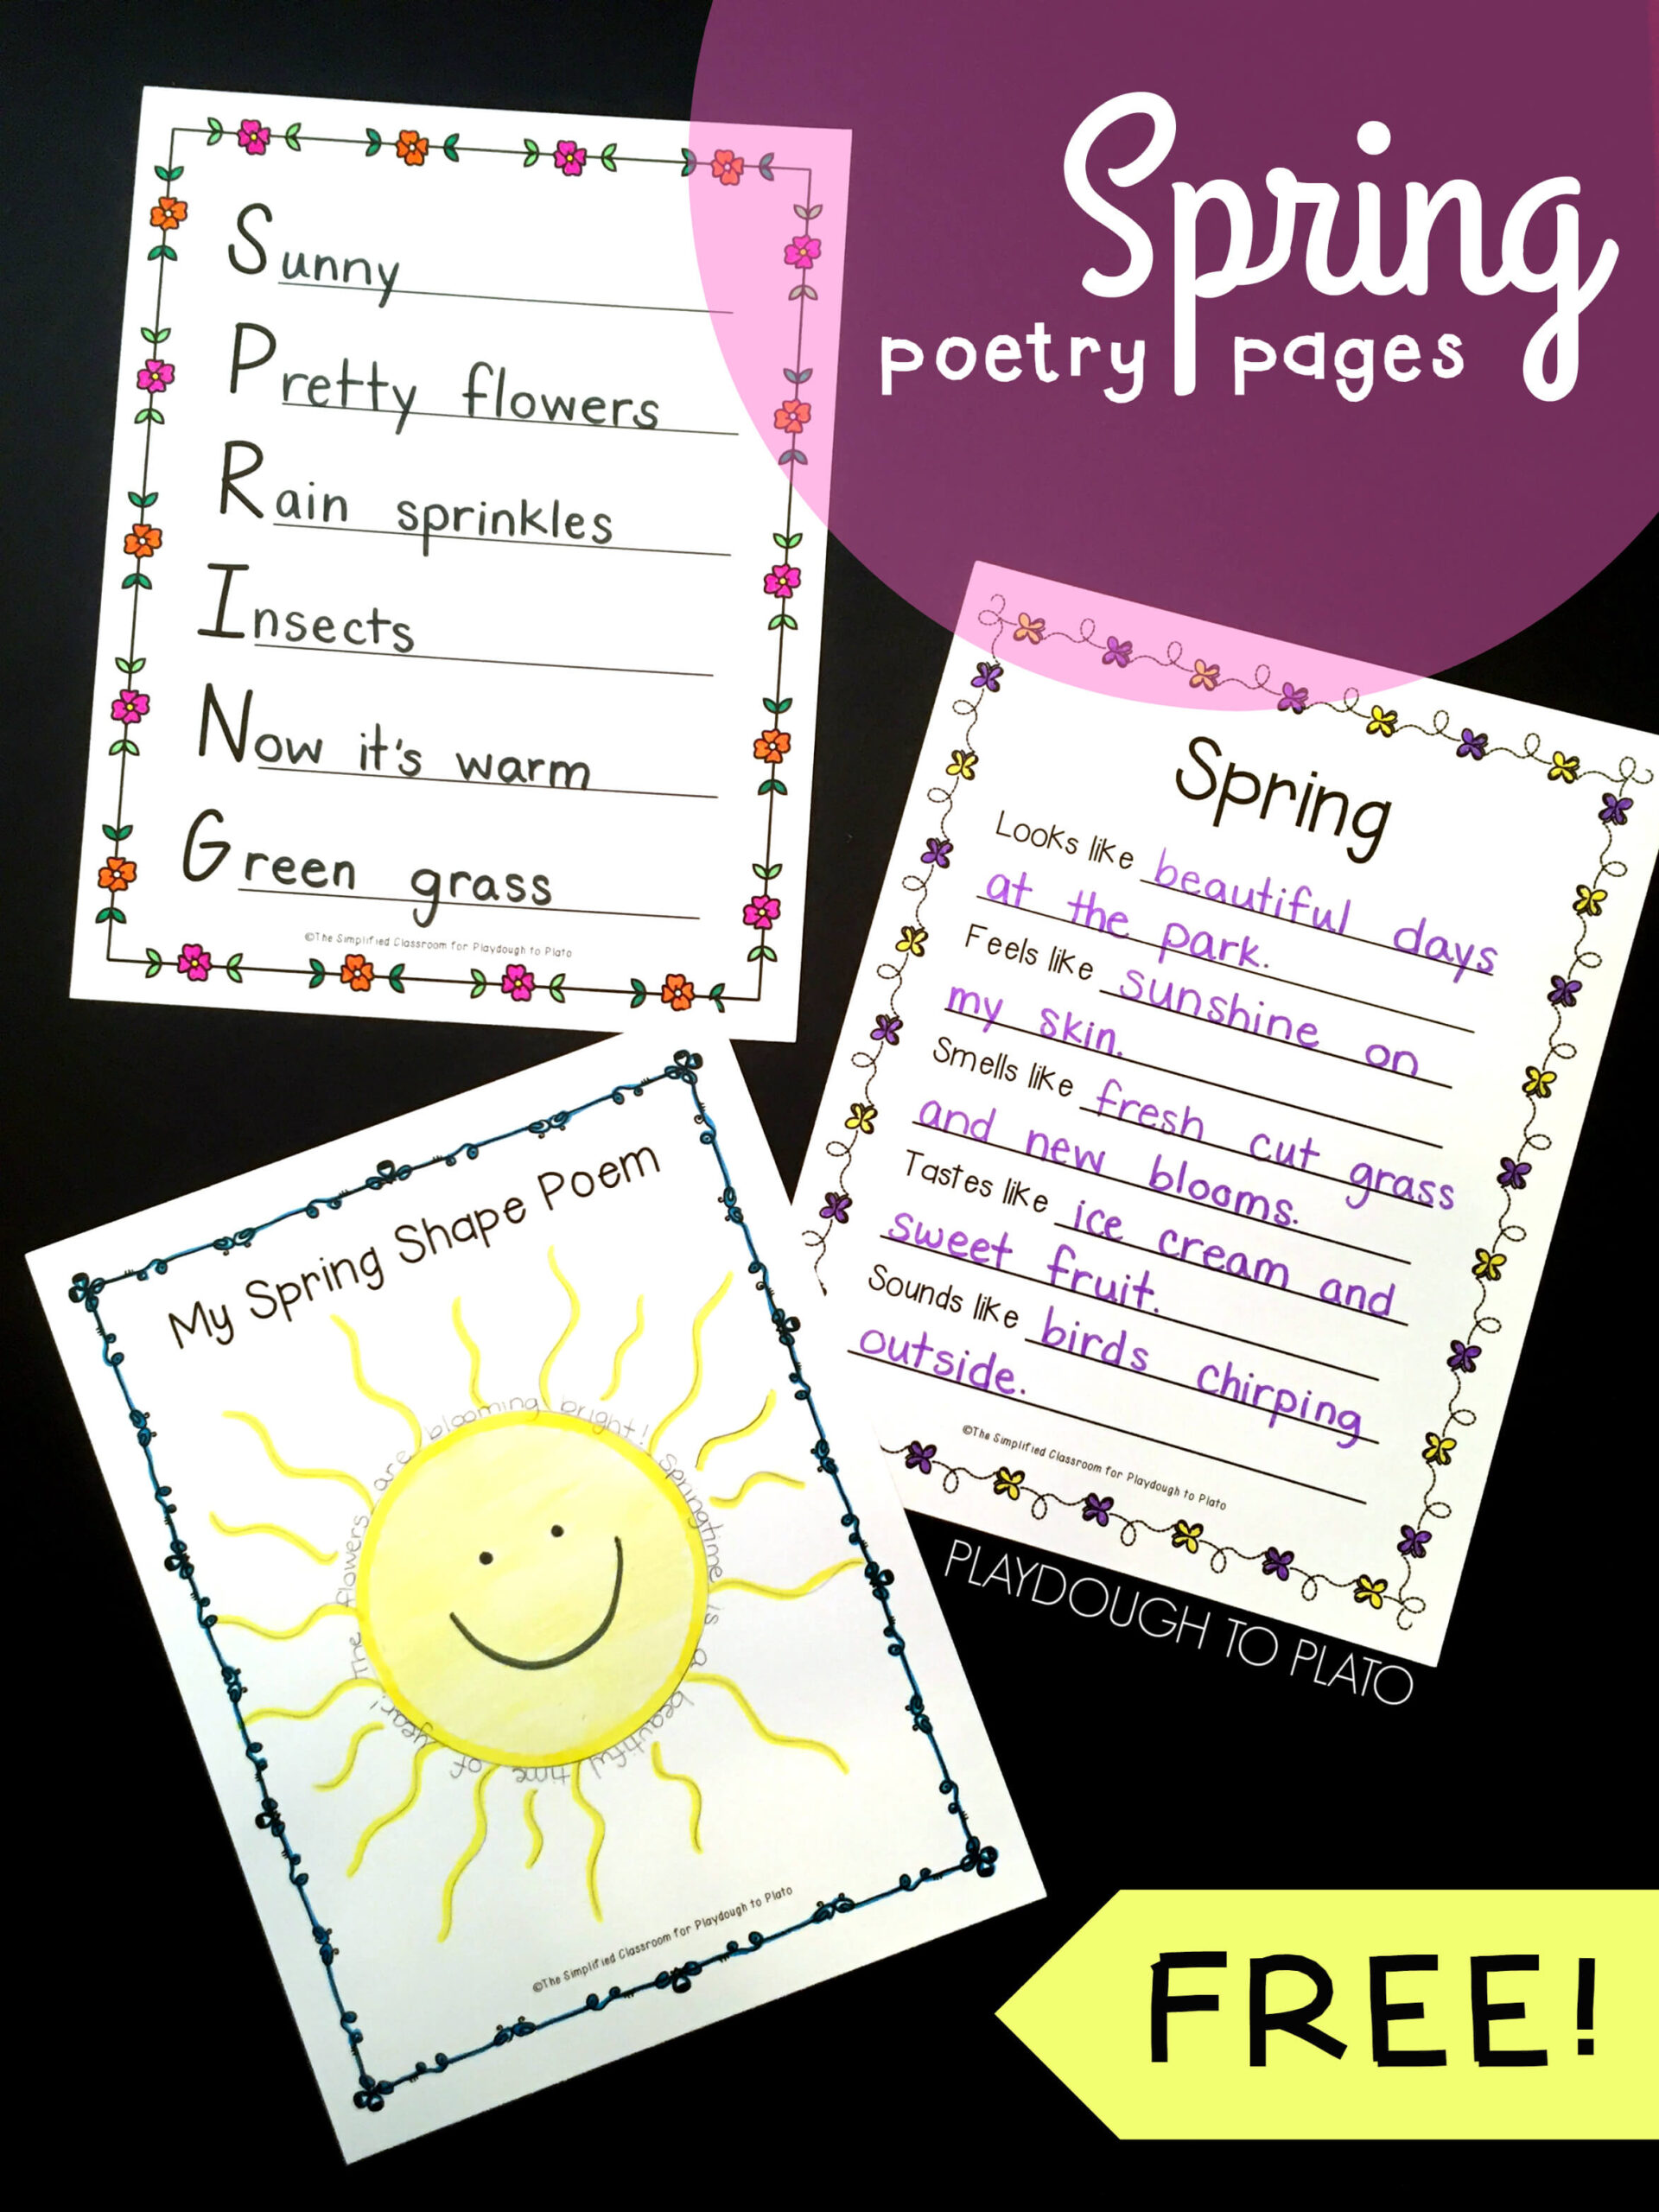 Spring Poetry Pages